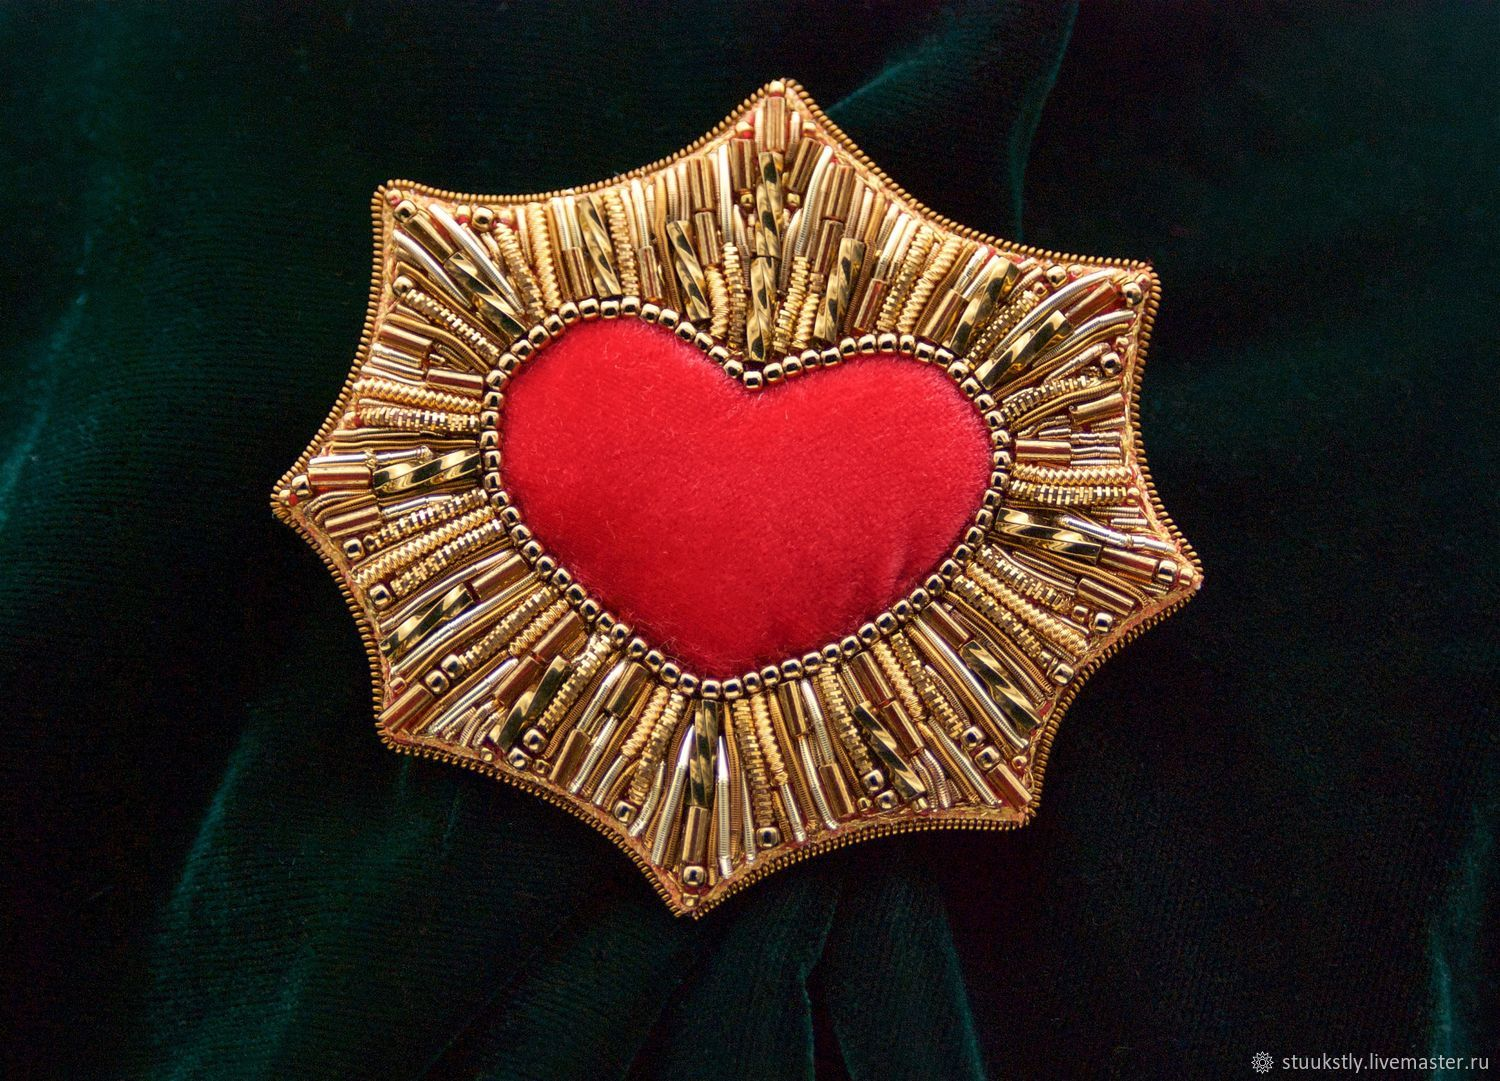 Heart gold beams brooch, Brooches, Moscow,  Фото №1